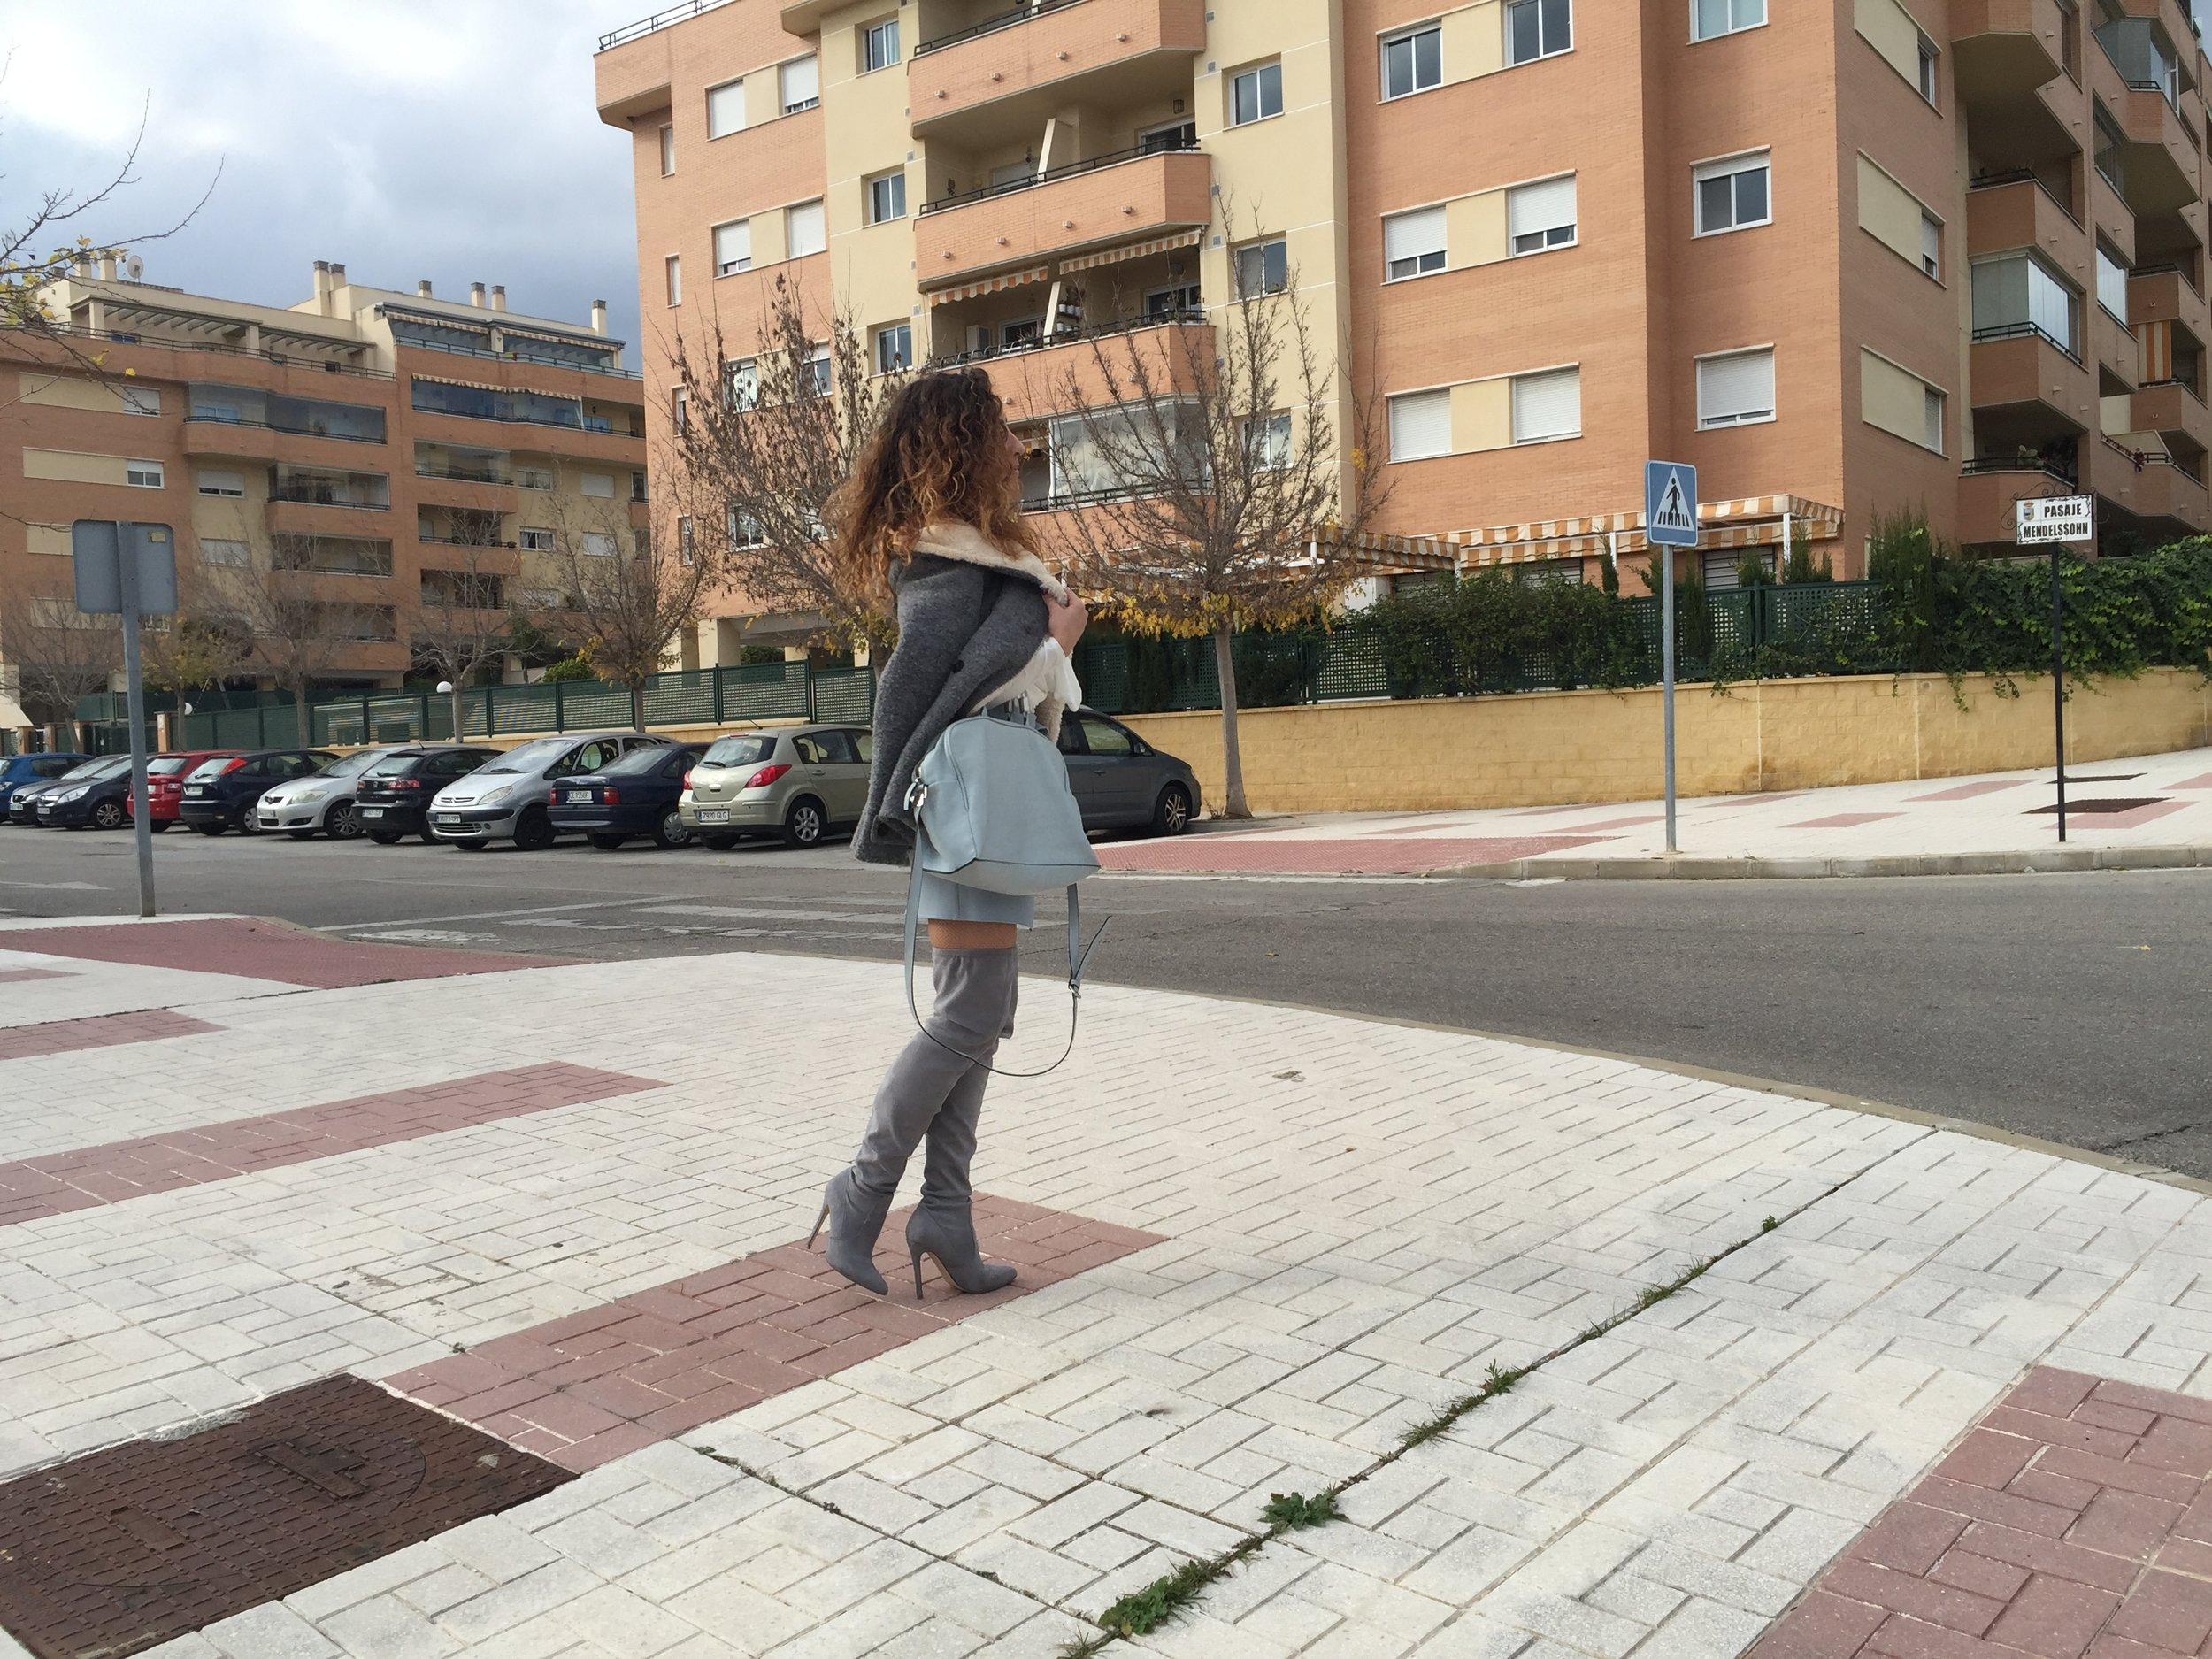 BLUE-SKY-OUTFIT-OF-THE-DAY-STREET-STYLE-FASHION-BLOGGER